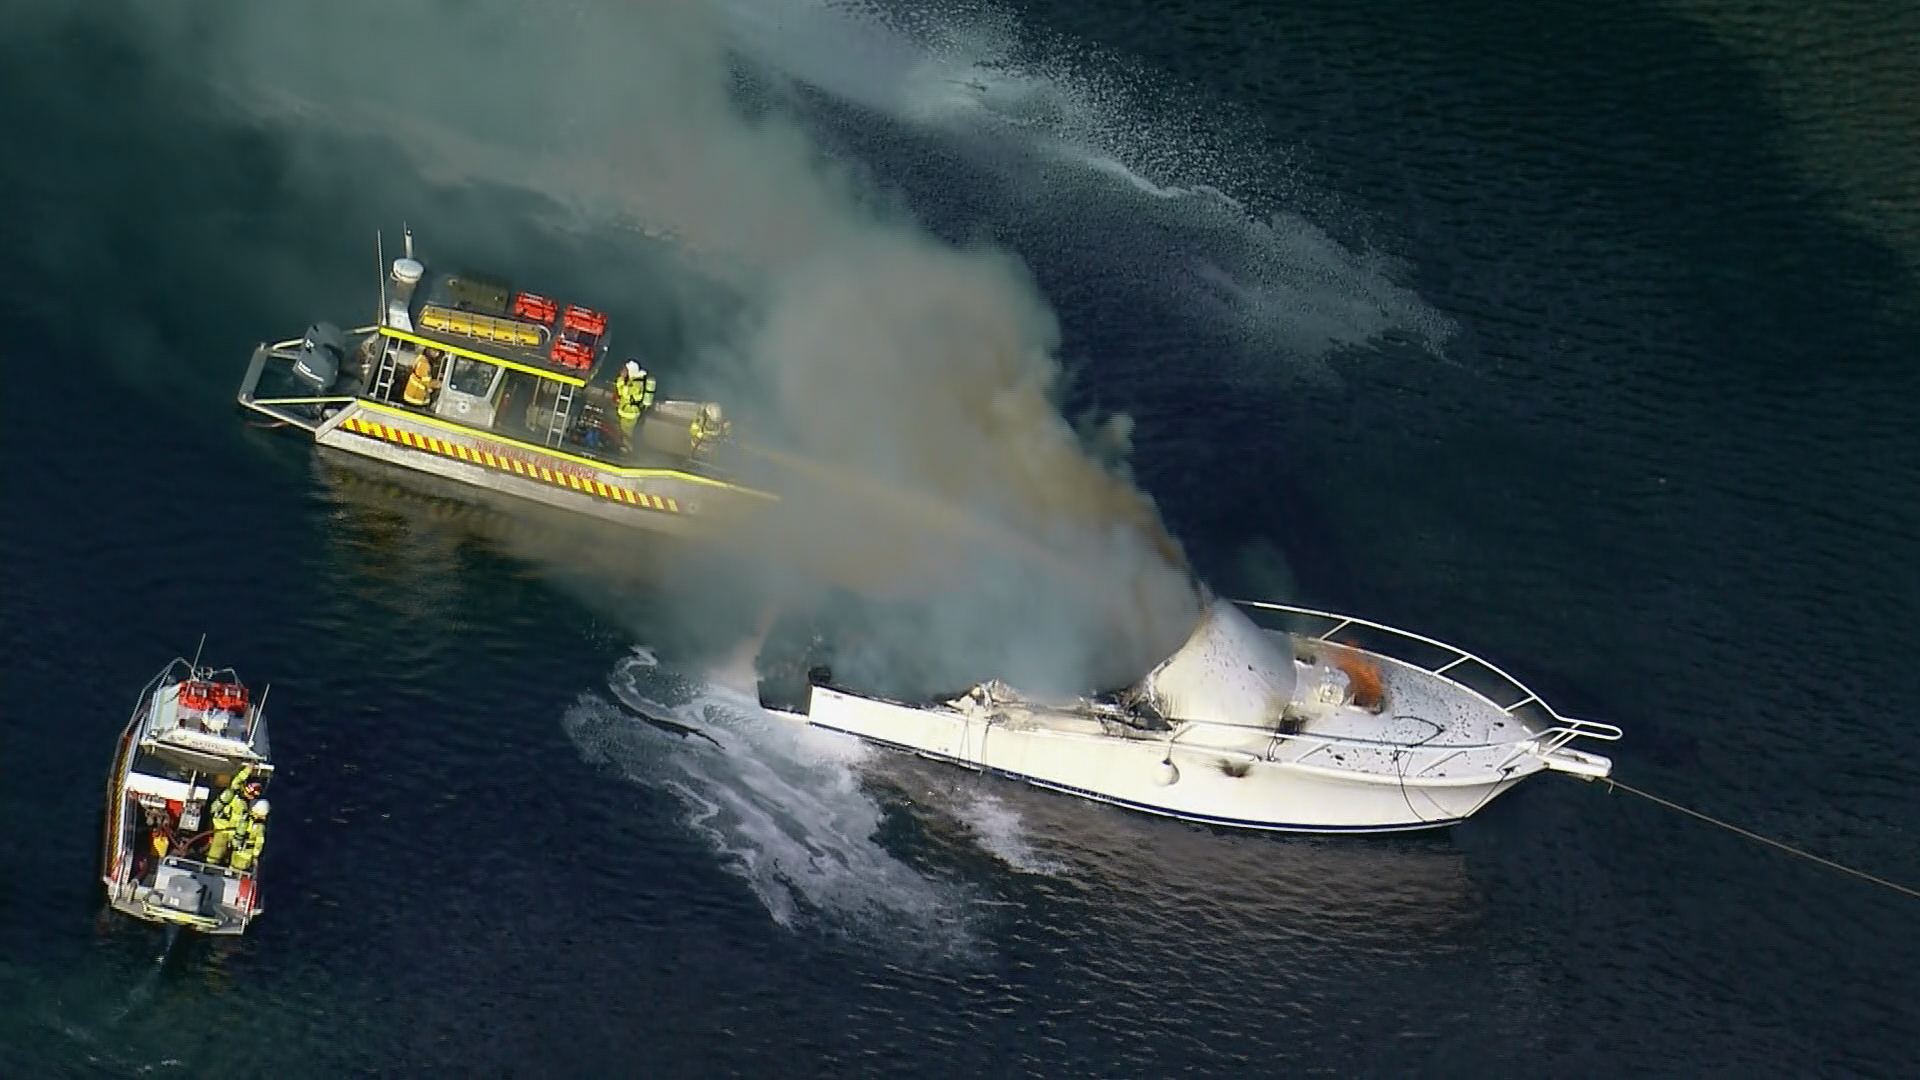 Fire on boat in Sydney's north